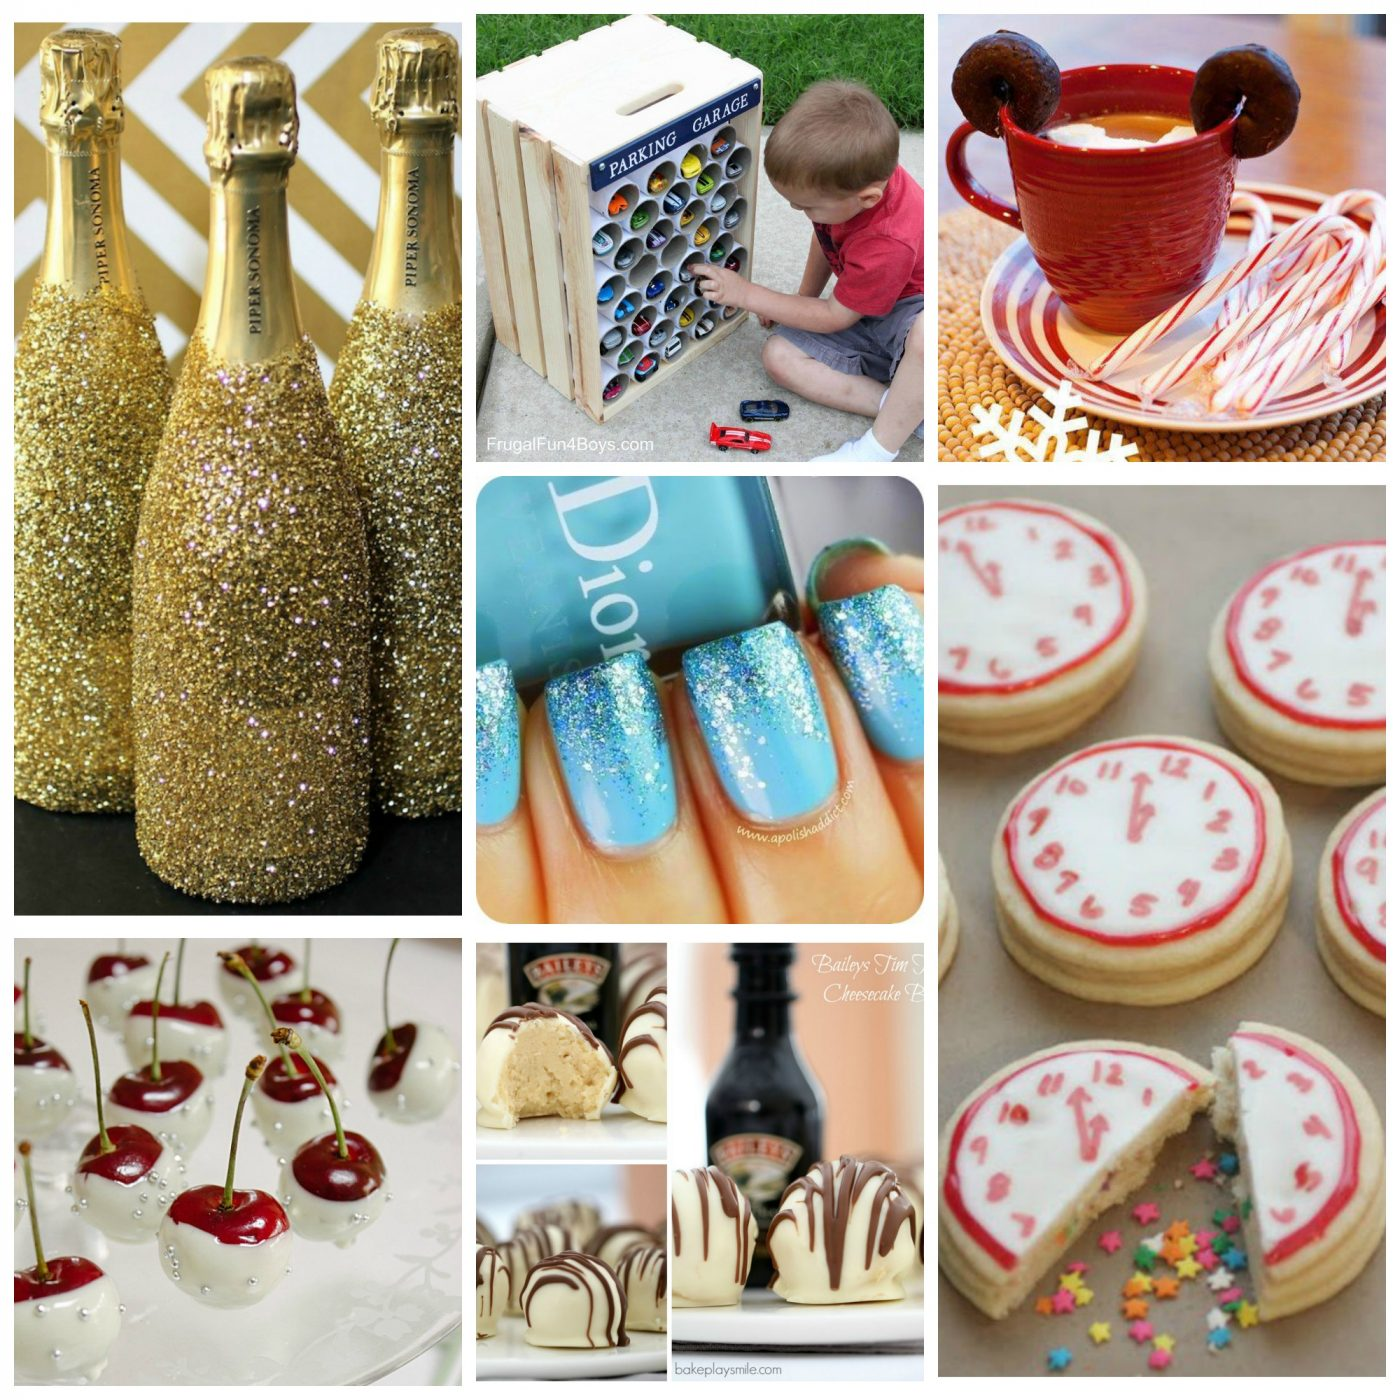 Kitchen Fun And Crafty Friday Link Party 167: Fun Finds Friday Including New Years & Other Fantastic